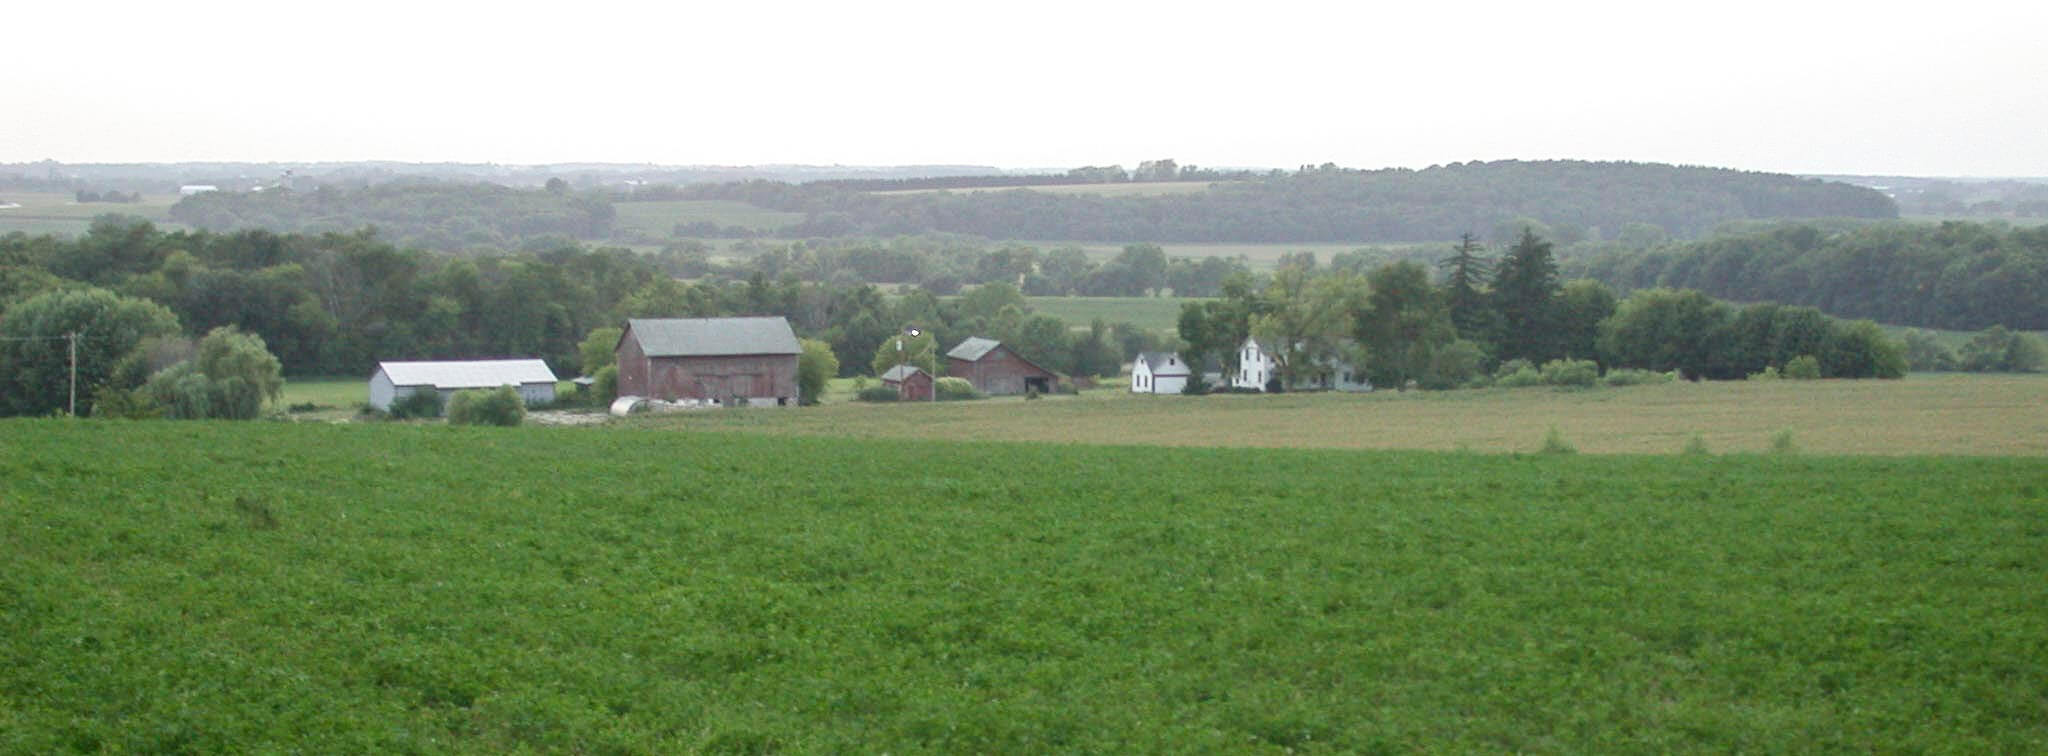 Farmstead panorama.jpg